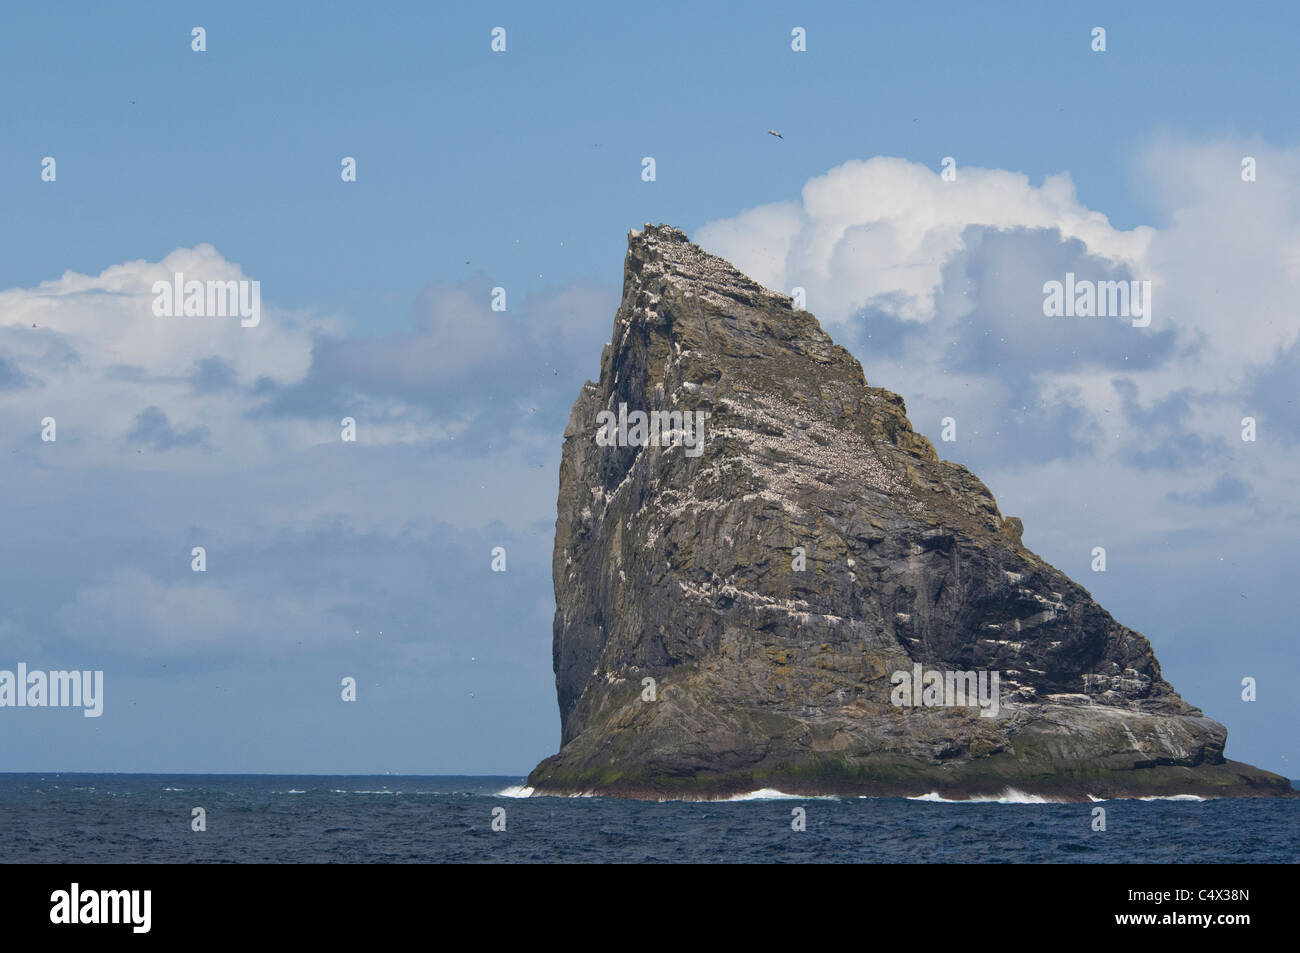 Scotland, St. Kilda Islands, Outer Hebrides. Sea stack next to the island of Boreray. - Stock Image